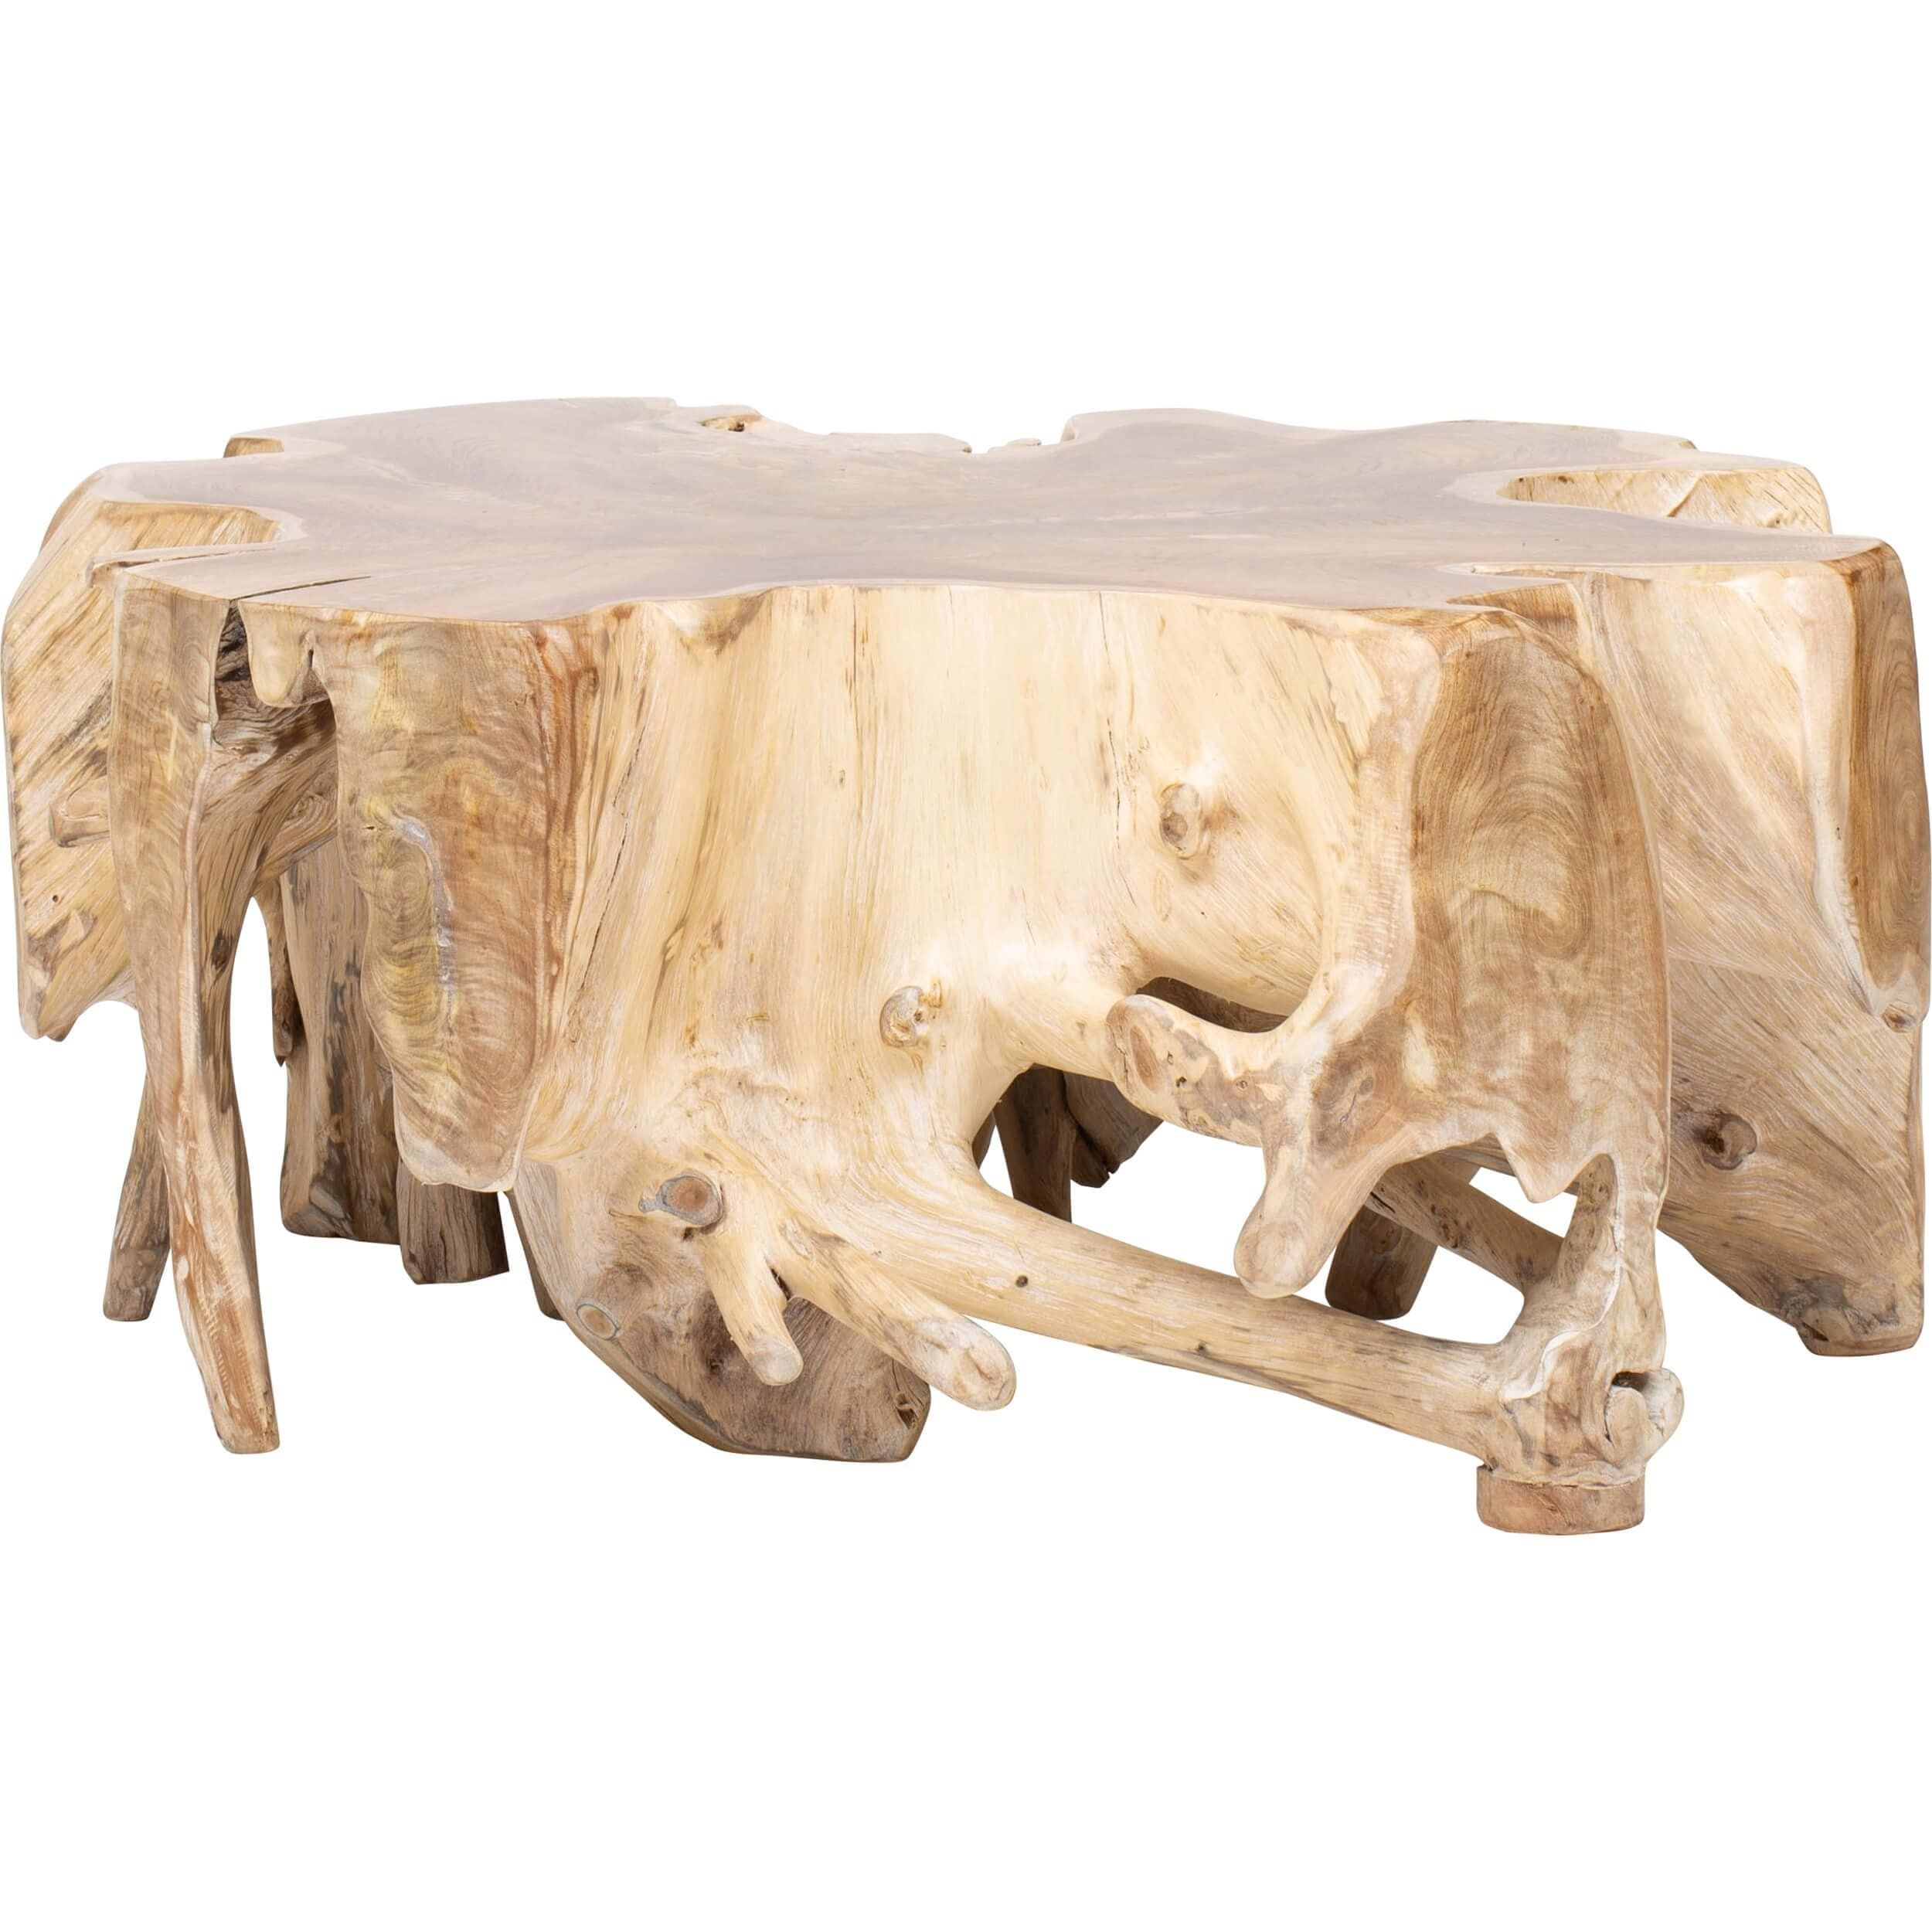 Cypress Root Coffee Table In 2021 Natural Wood Coffee Table Coffee Table Natural Coffee Table [ 2500 x 2500 Pixel ]